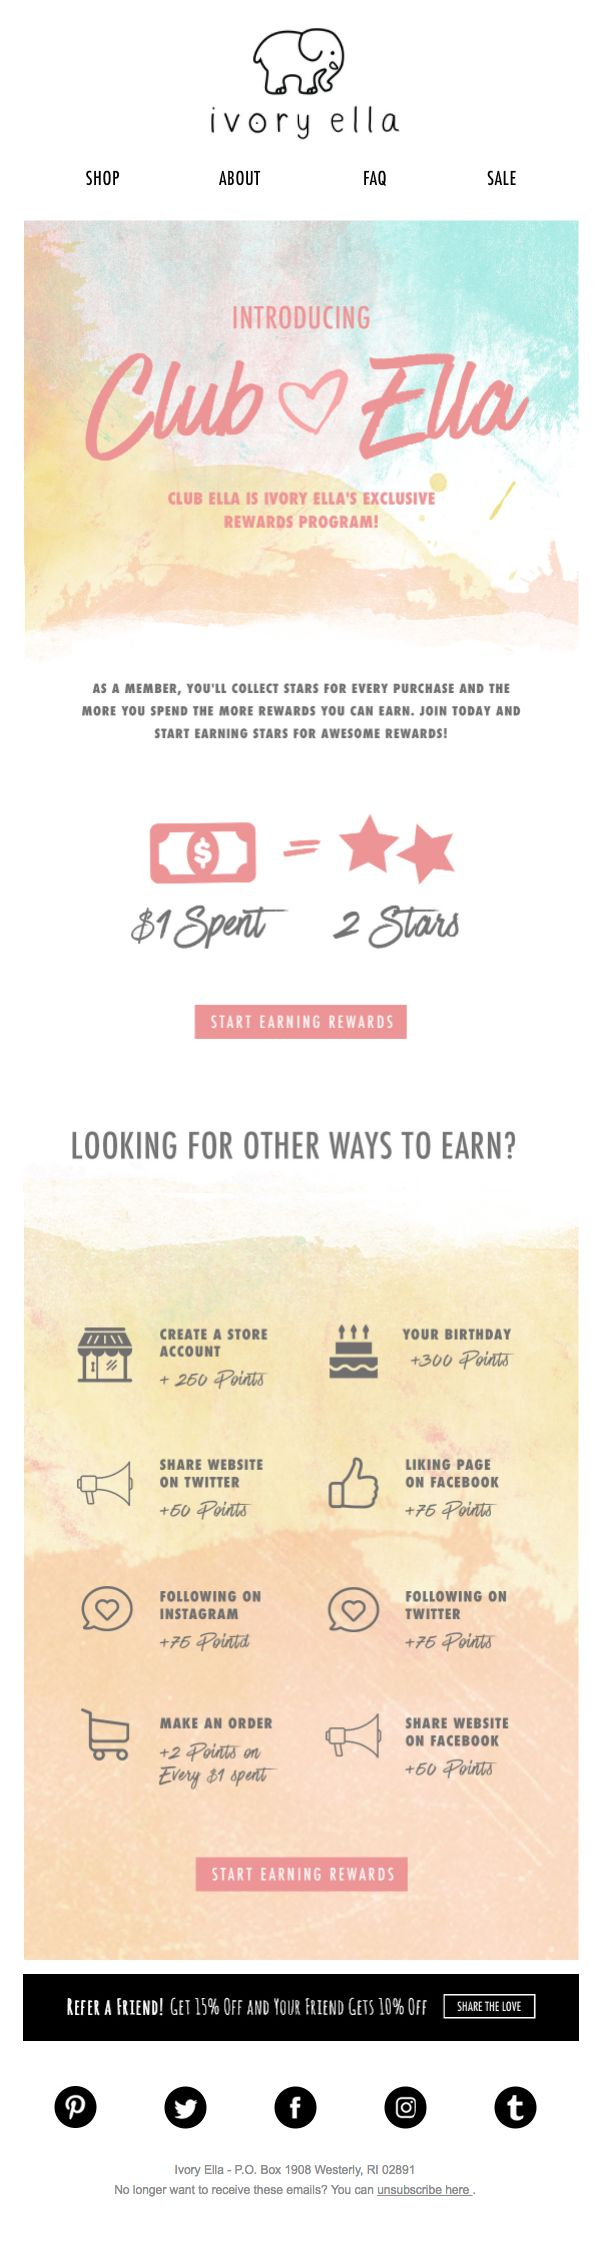 Ivory Ella lets customers know about their loyalty program with this beautiful newsletter.